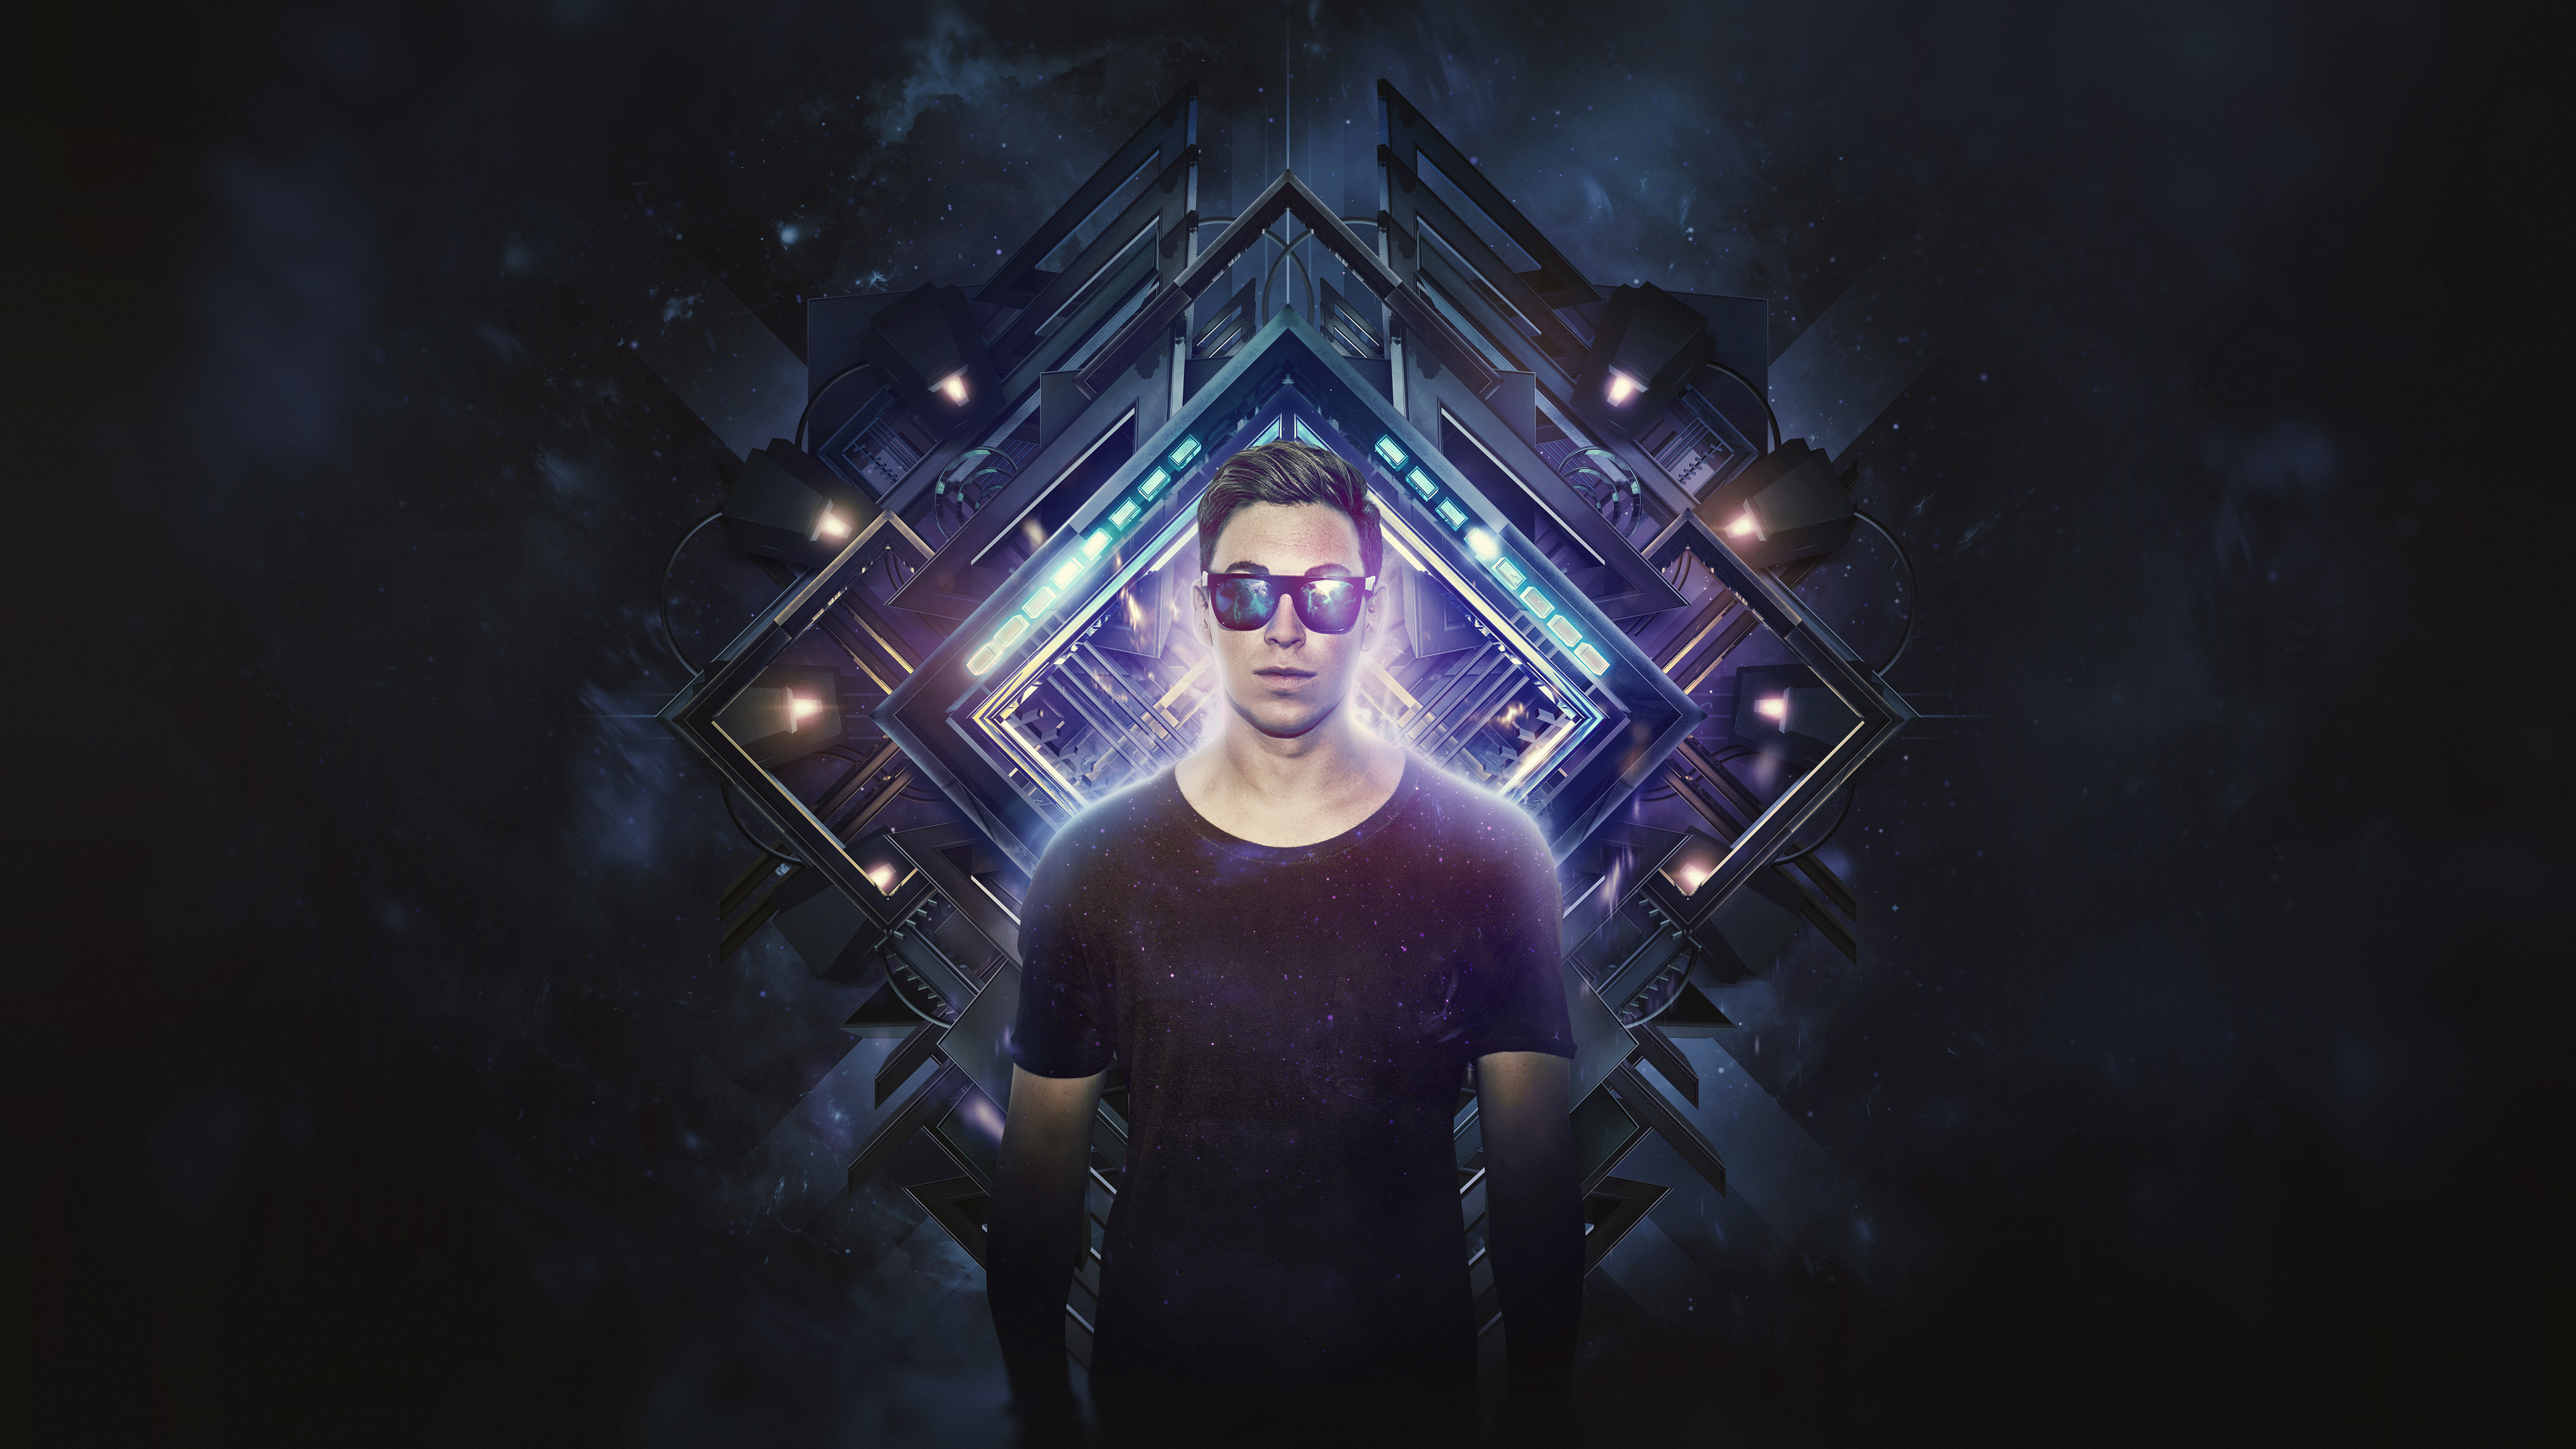 hardwell wallpaper hd - photo #1